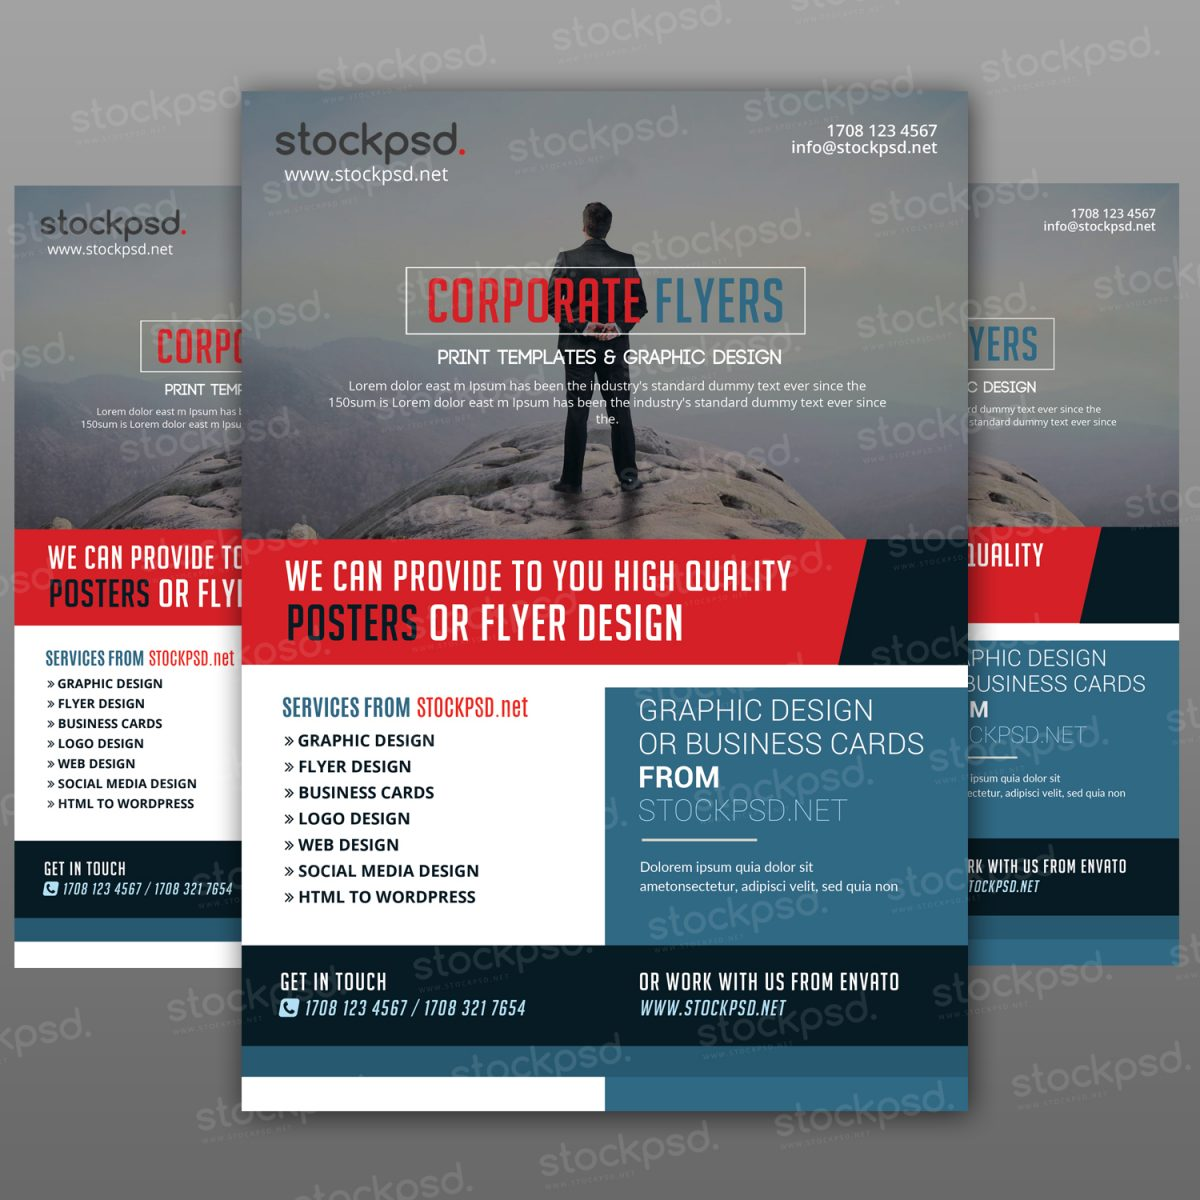 Corporate Flyer Freebie PSD Template